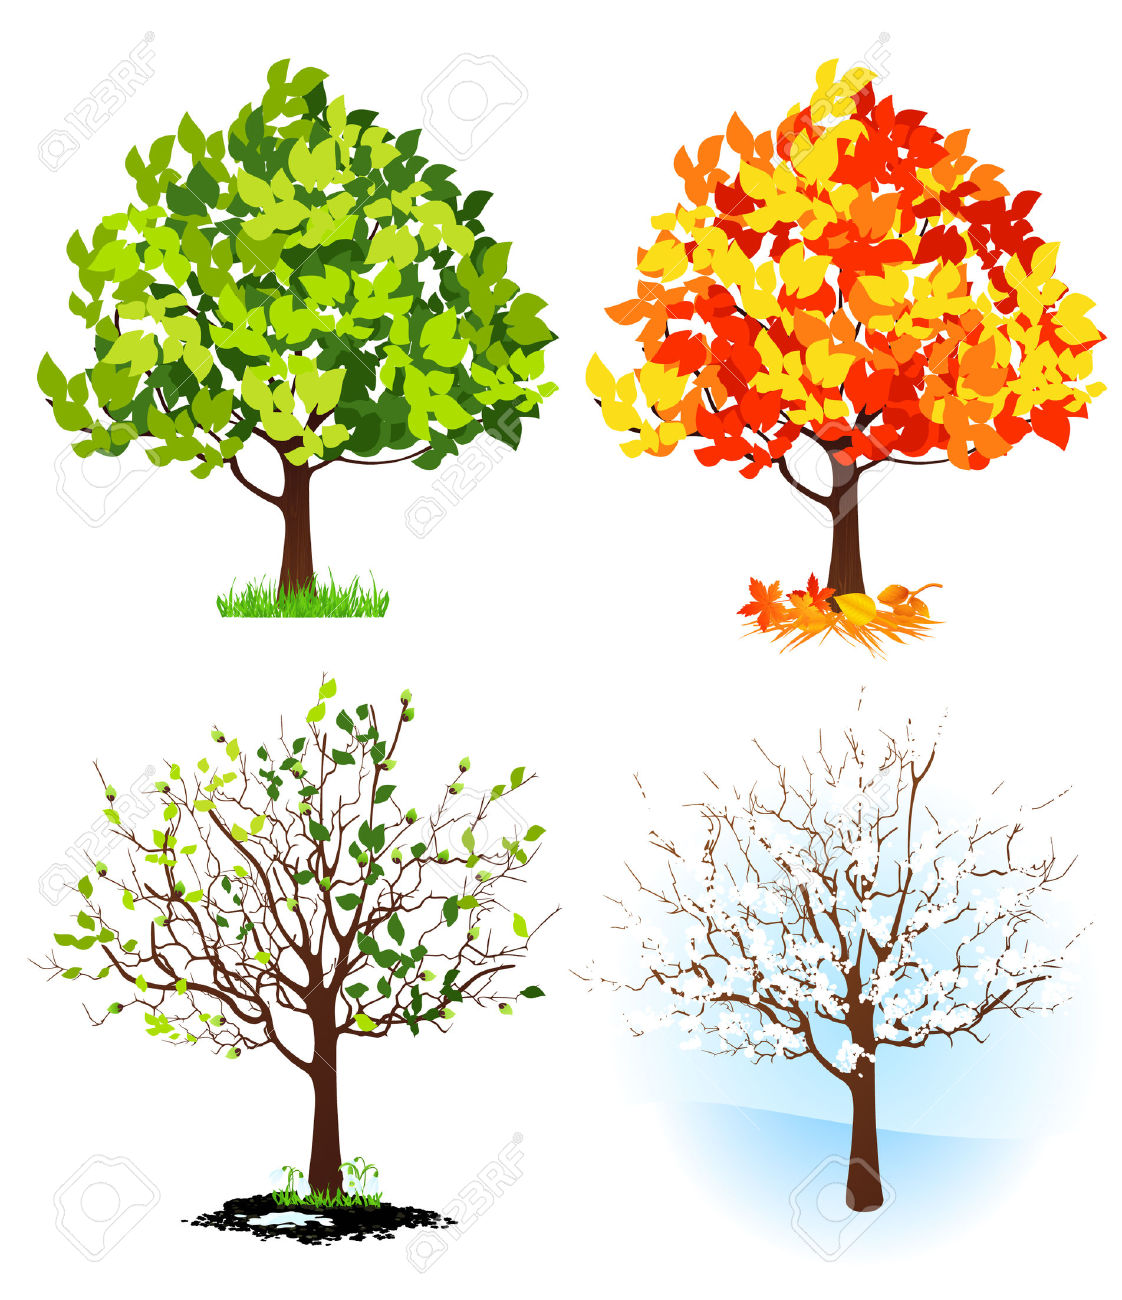 Seasons Clip Art Free | Clipart Panda - Free Clipart Images